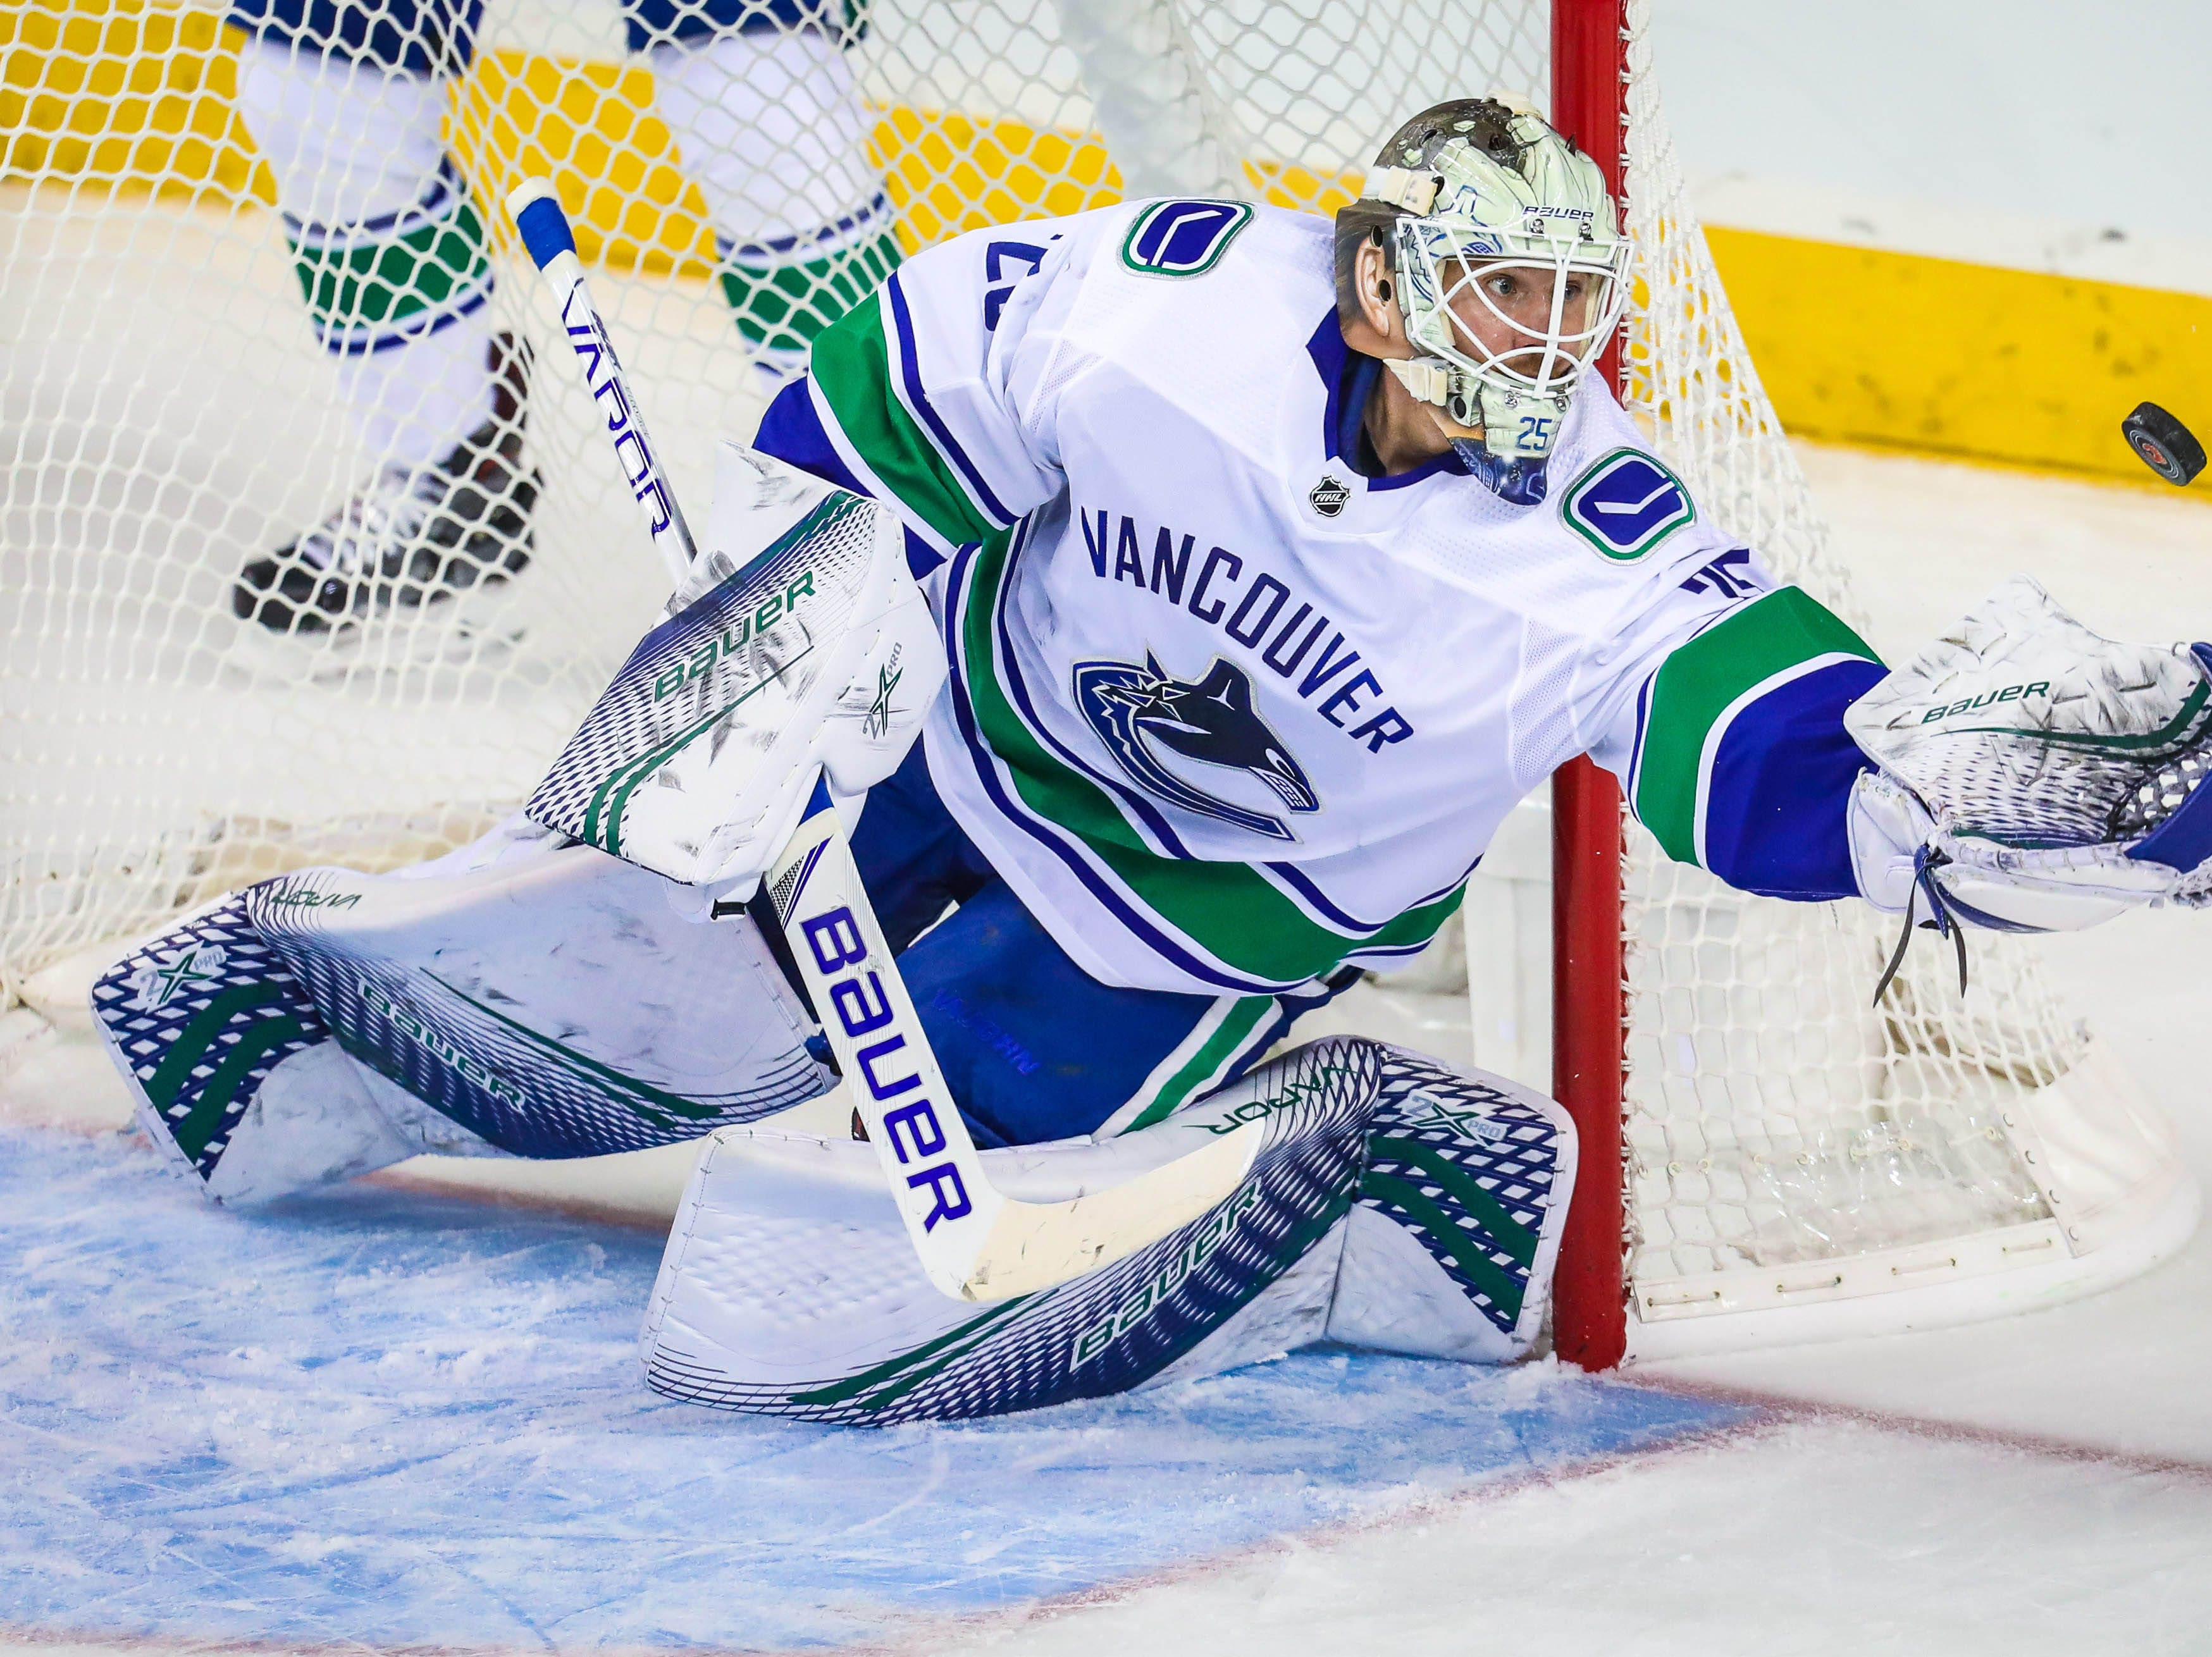 Oct. 6: Vancouver Canucks goaltender Jacob Markstrom makes a save against the Calgary Flames during the second period at Scotiabank Saddledome.